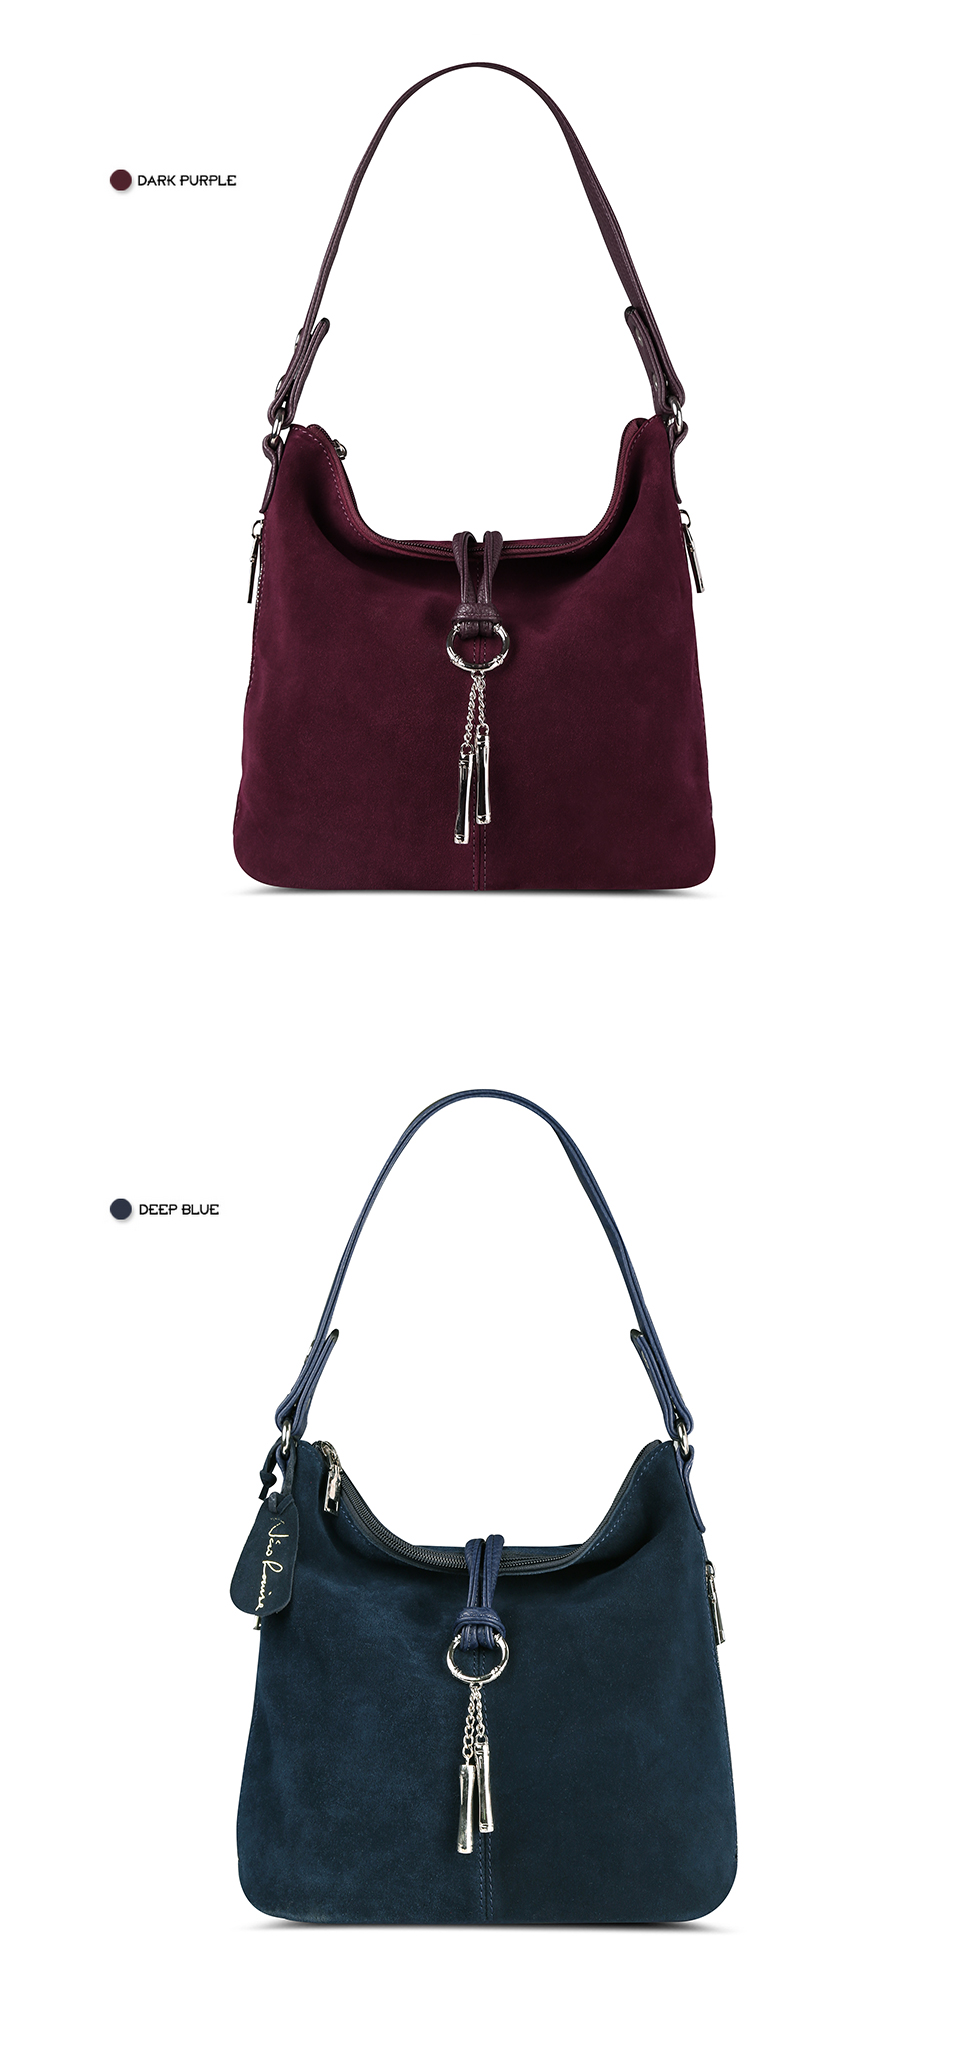 HTB1lwRAciIRMeJjy0Fbq6znqXXaP - Fashion Women Split Leather Shoulder Bag Female Suede Casual Crossbody handbag Casual Lady Messenger Hobo Top-handle Bags